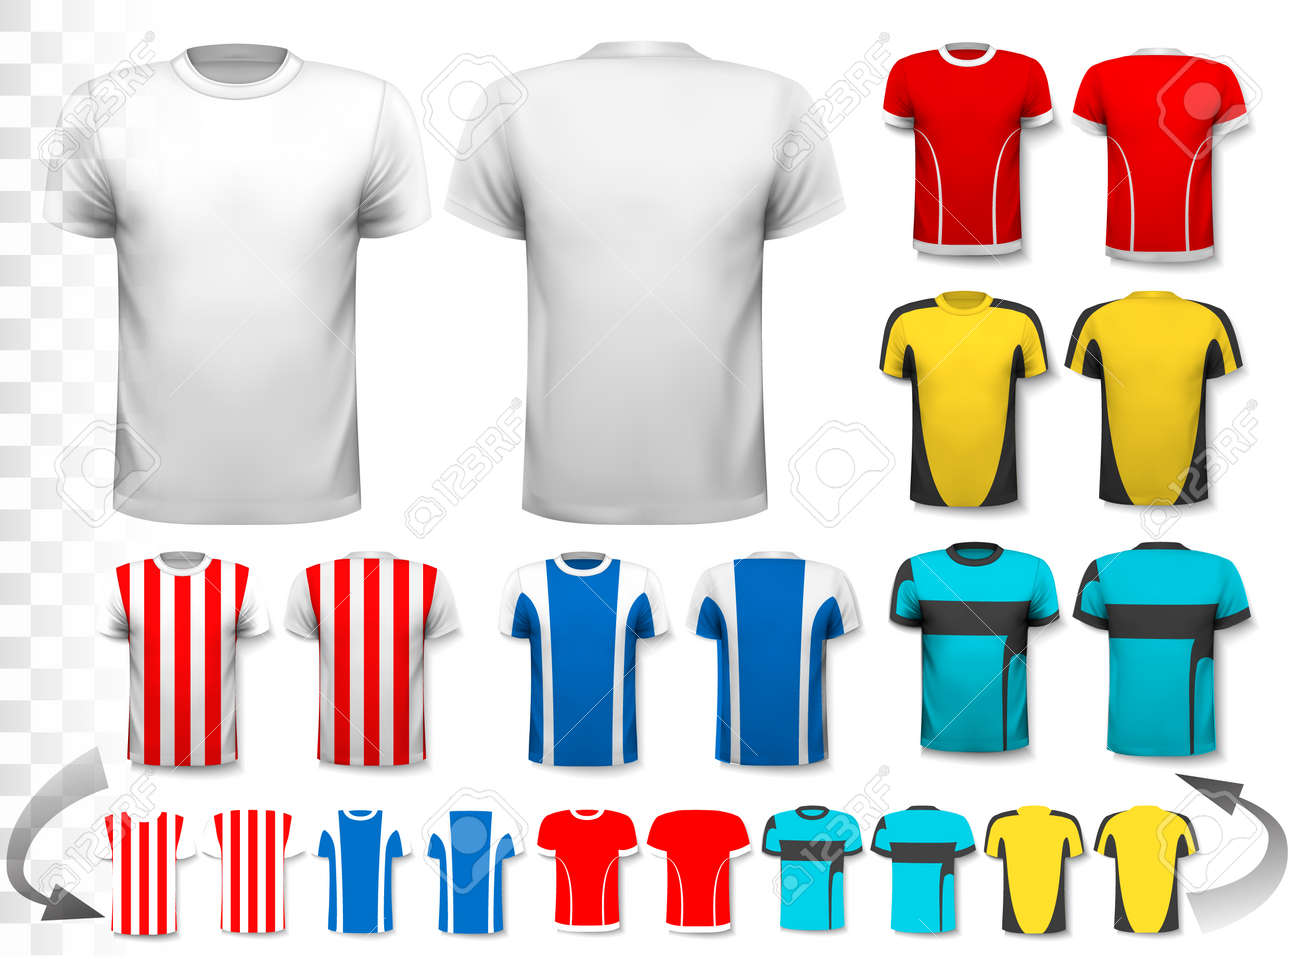 Cool 1 Week Schedule Template Tall 1099 Int Template Solid 12 Hour Schedule Template 15 Year Old Resume Sample Youthful 2 Page Resume Template Word Gray2 Panel Brochure Template Collection Of Various Soccer Jerseys. The T Shirt Is Transparent ..